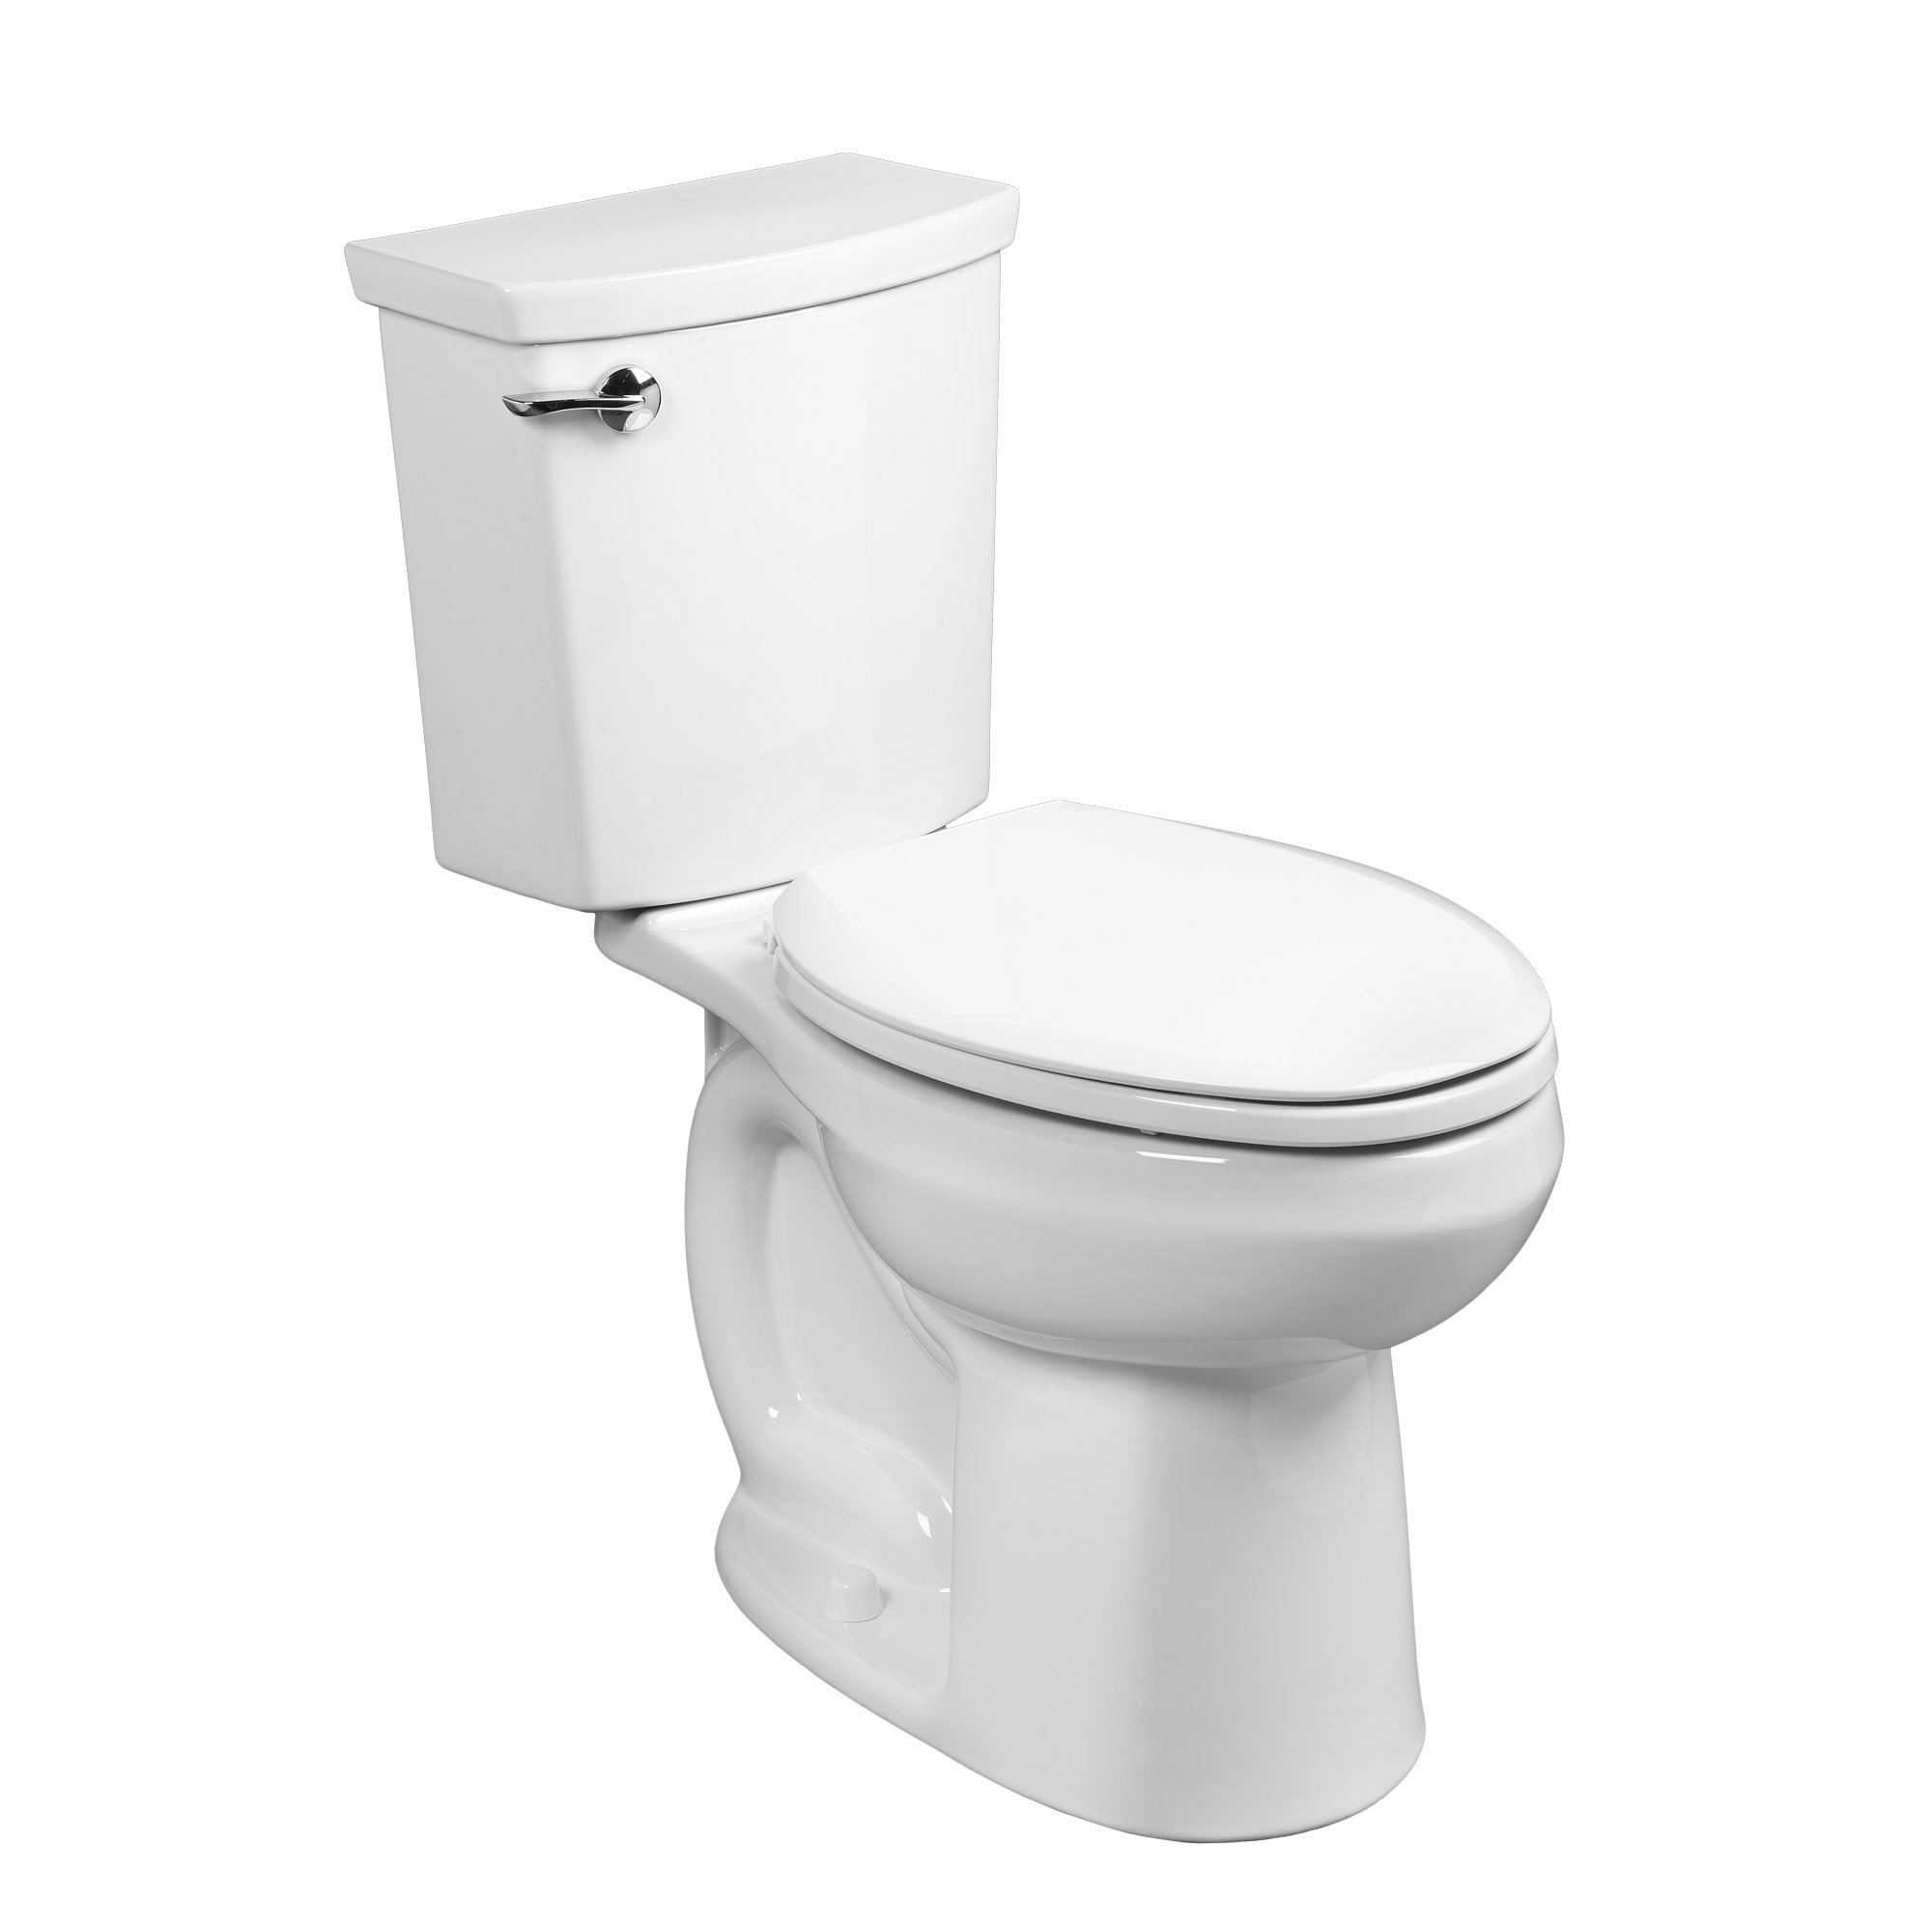 American Standard 288AA114.020 H2Optimum Siphonic Right Height Elongated Toilet, White2-Piece